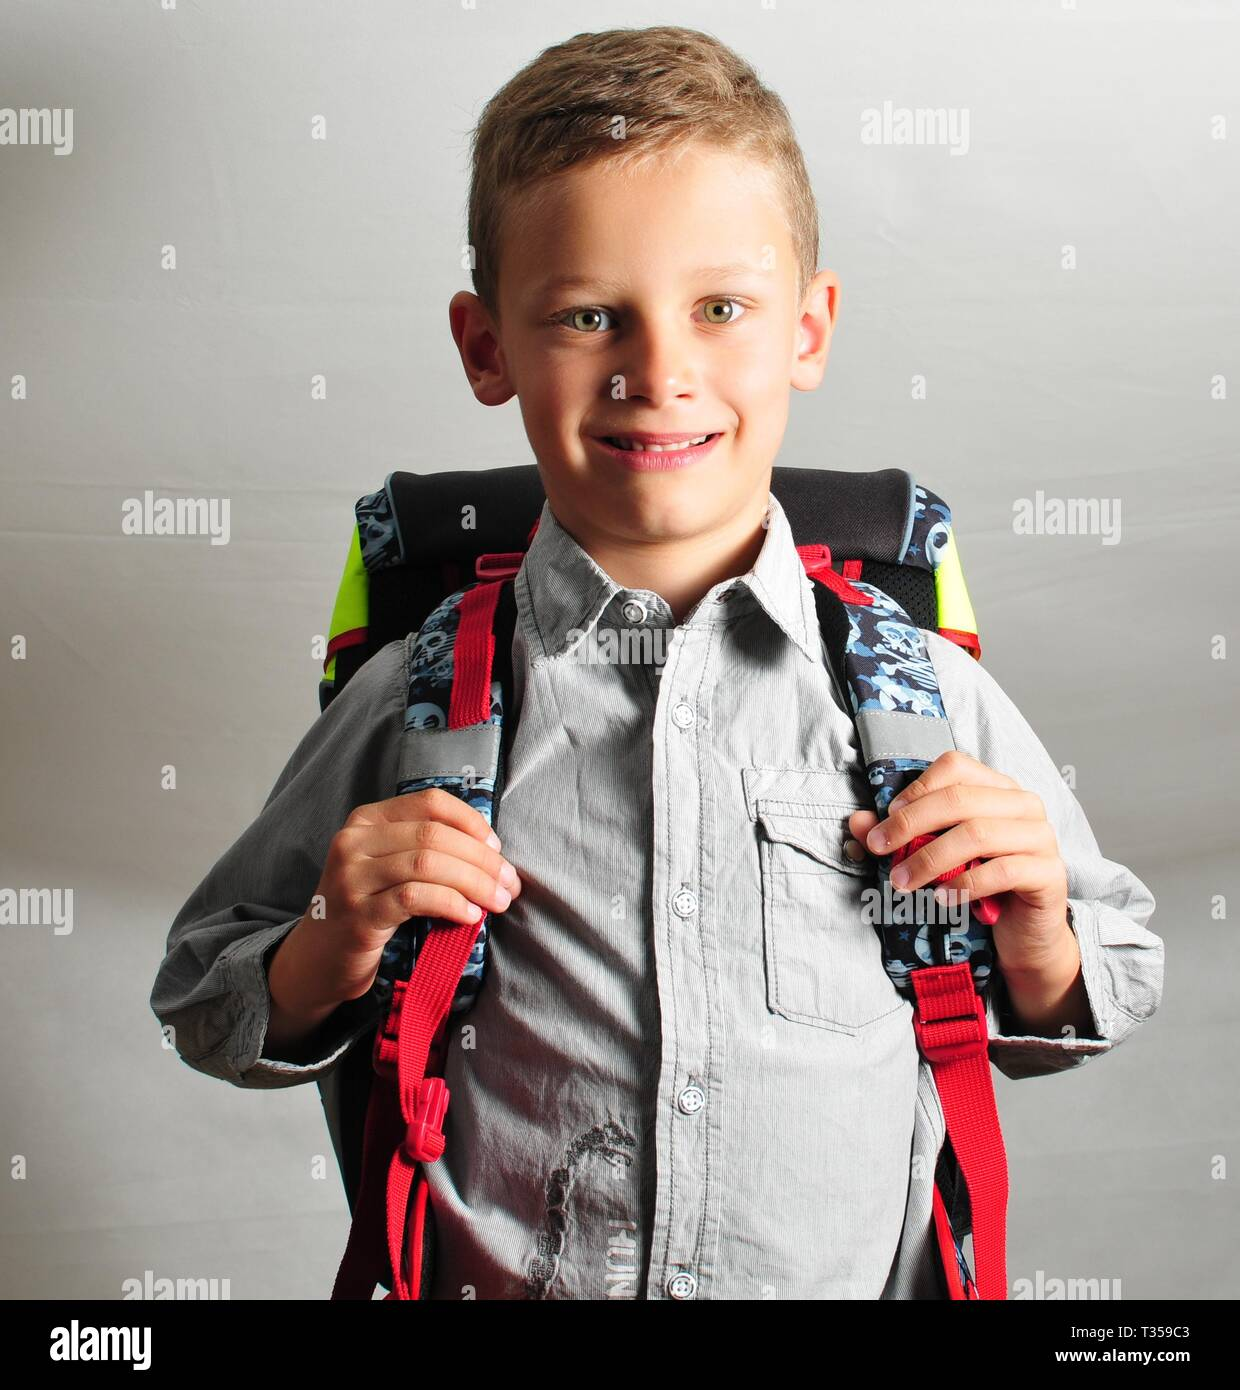 fresh smiling young boy with schoolbag - Stock Image